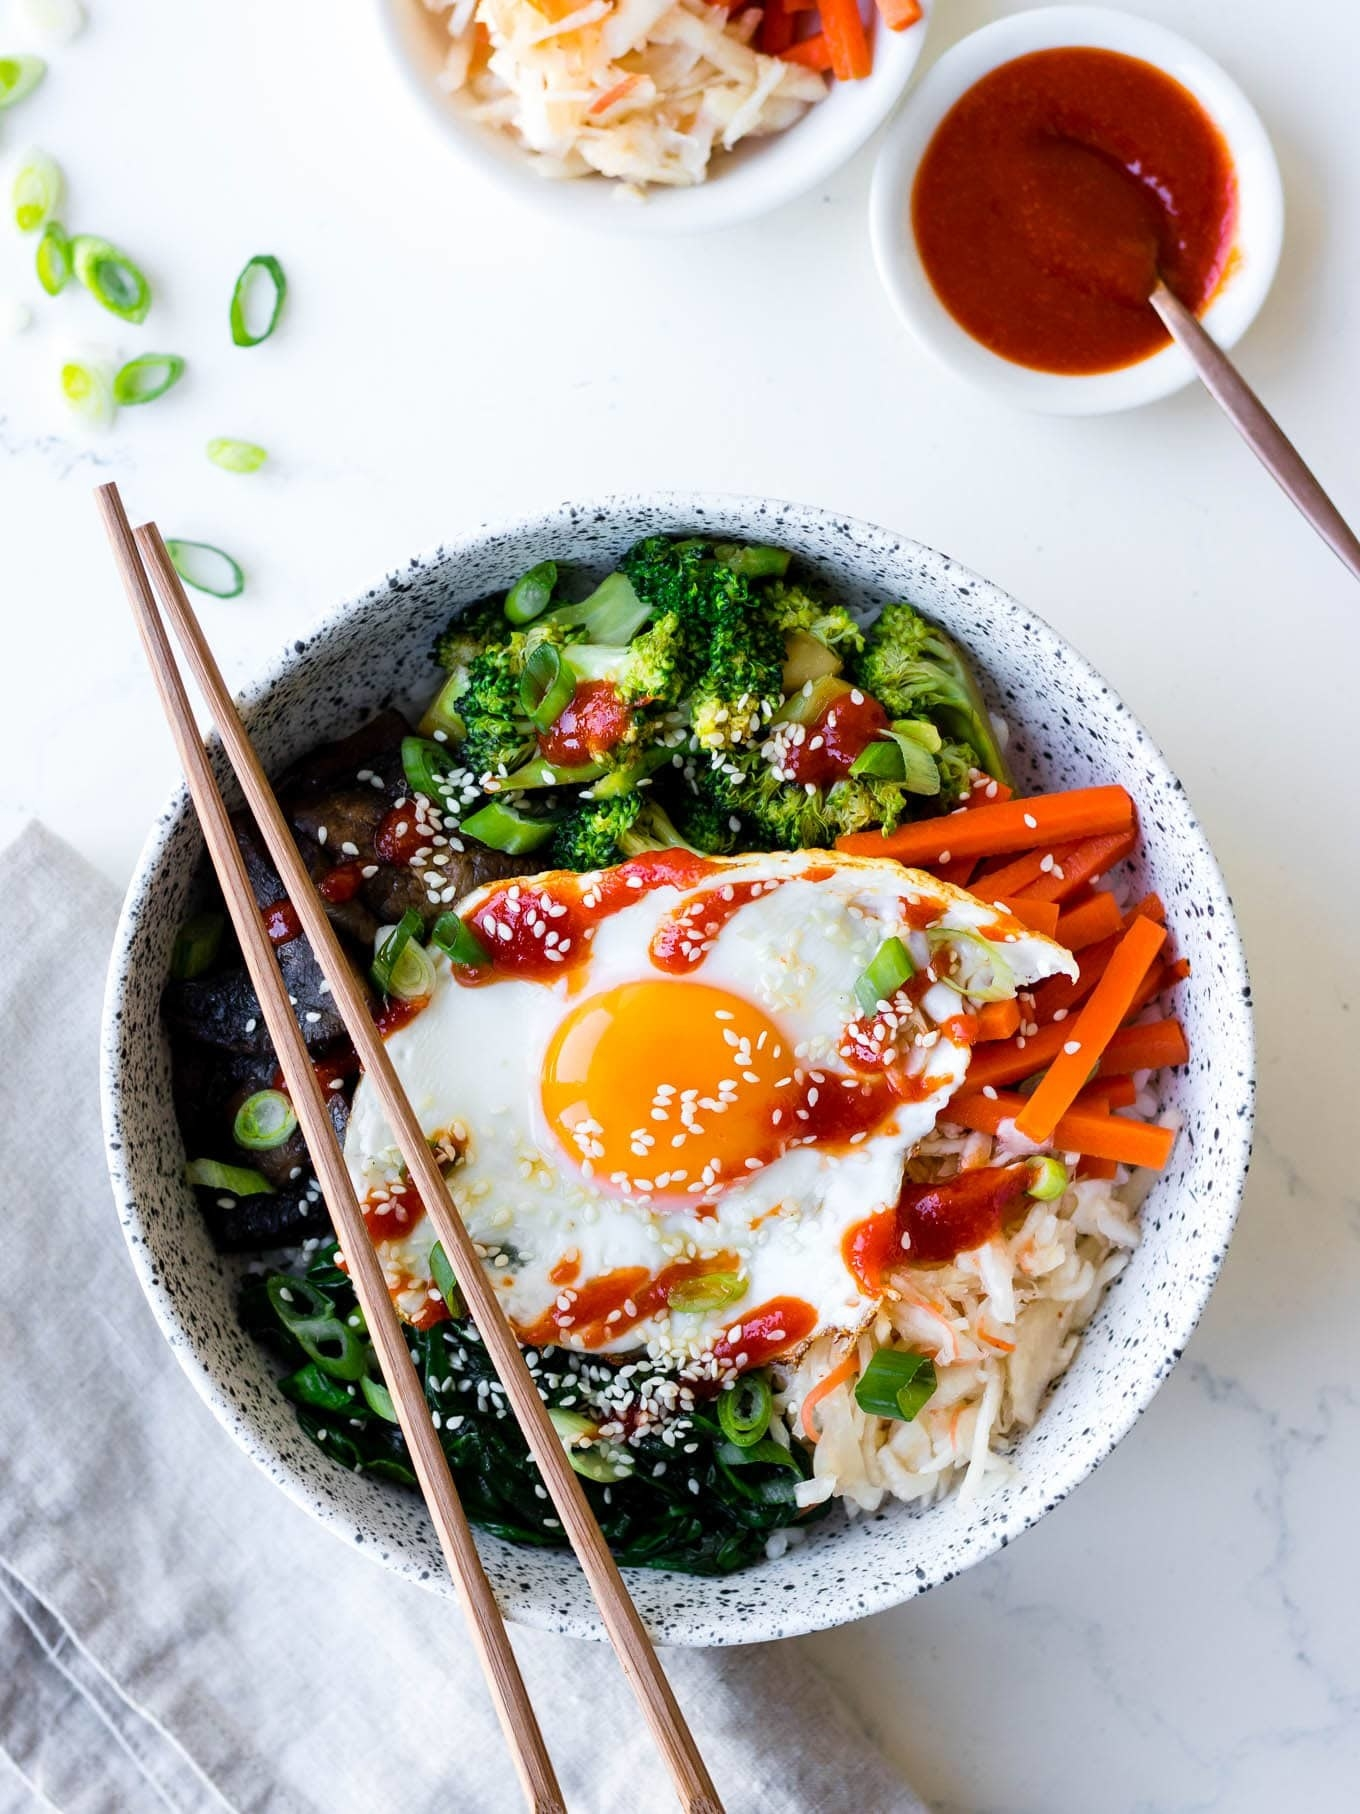 Korean rice bowls with greens, carrots, and fried egg.